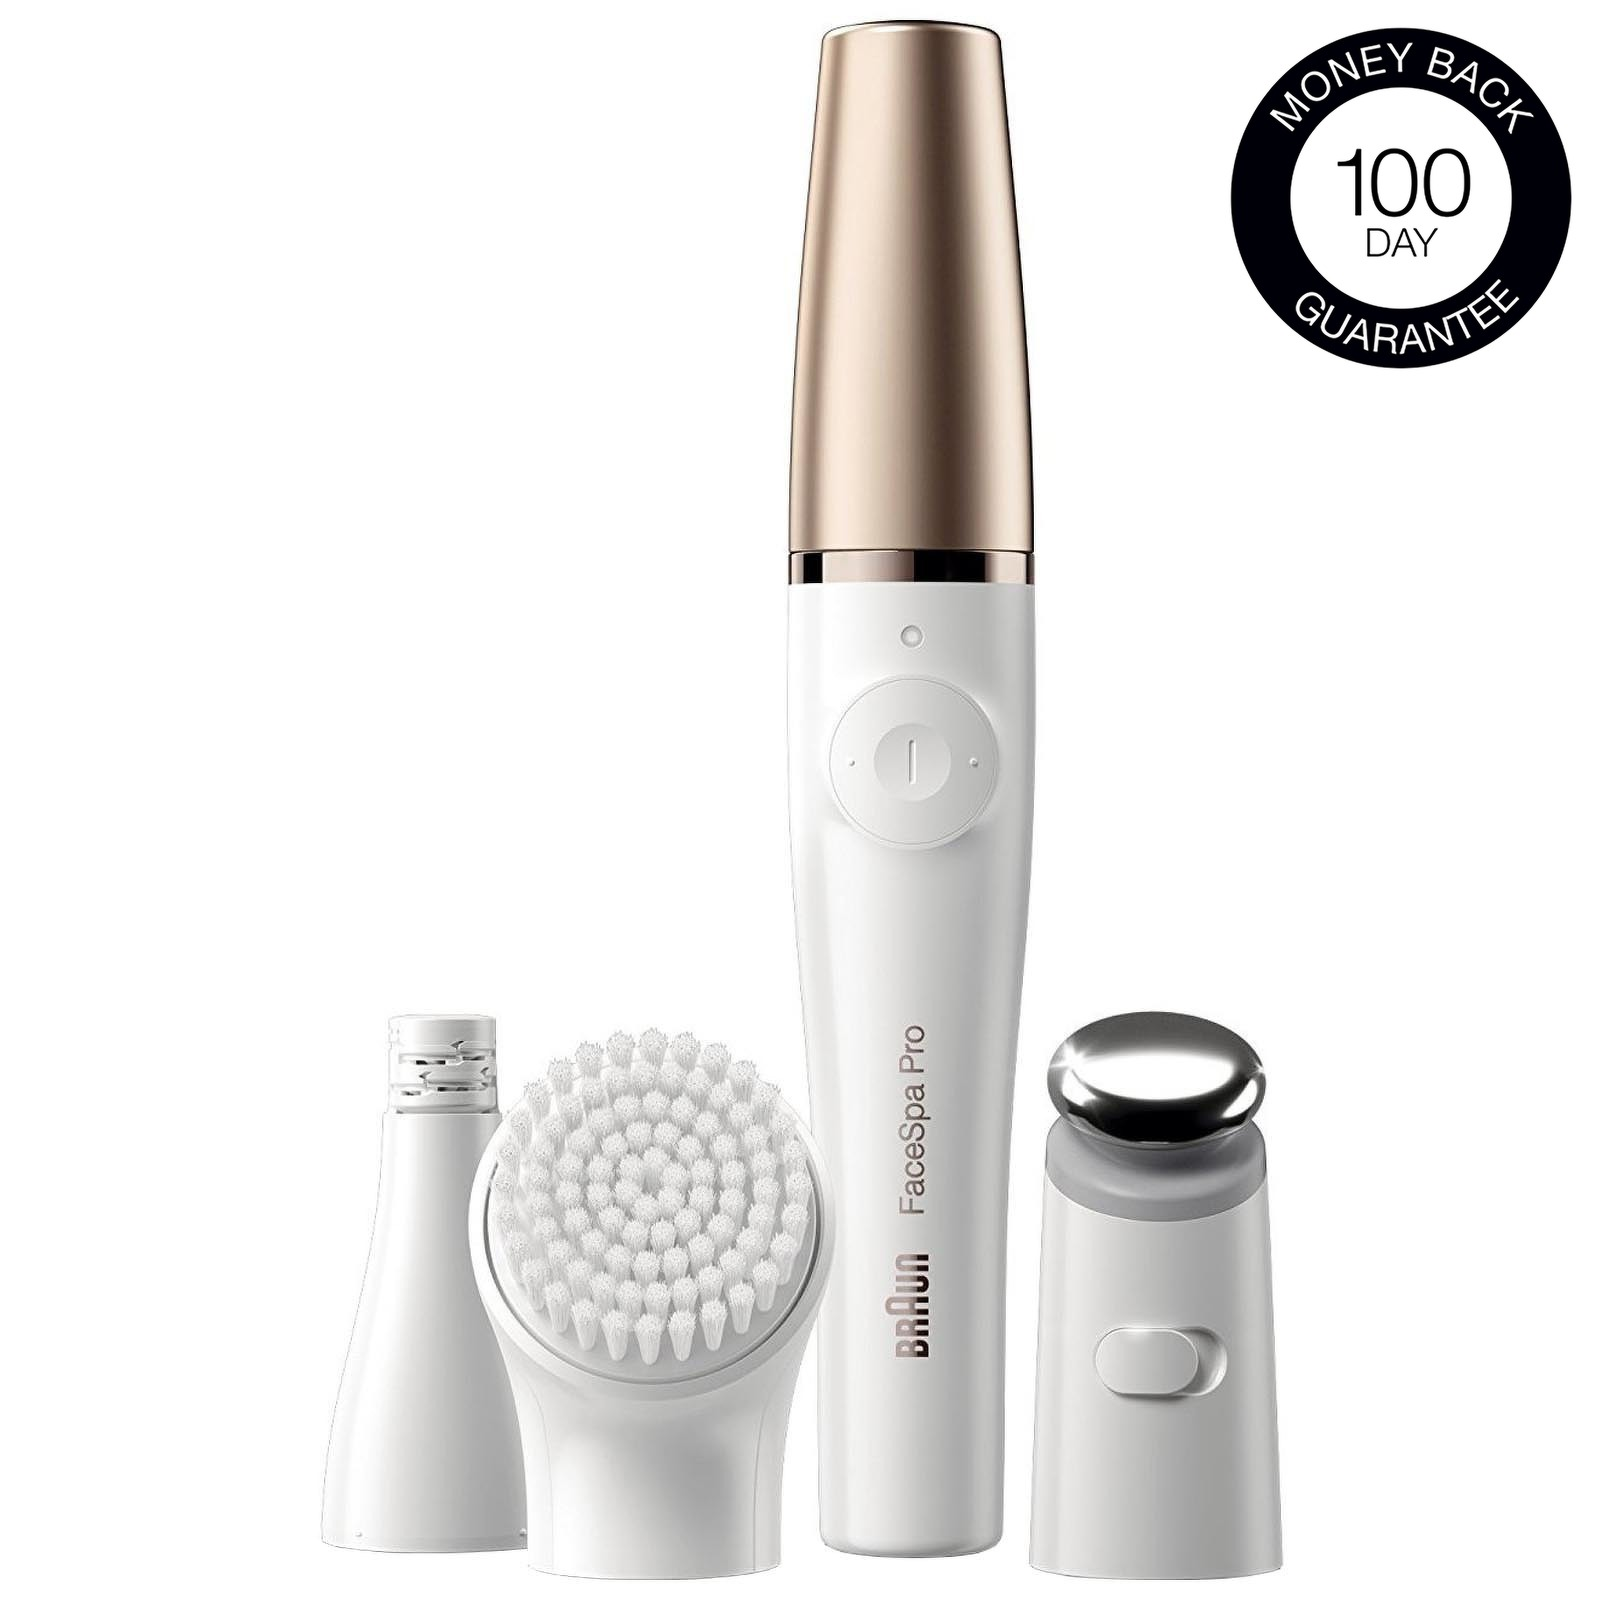 Braun FaceSpa Pro 911 FaceSpa Pro 3 in 1 Facial, Cleansing and Epilator